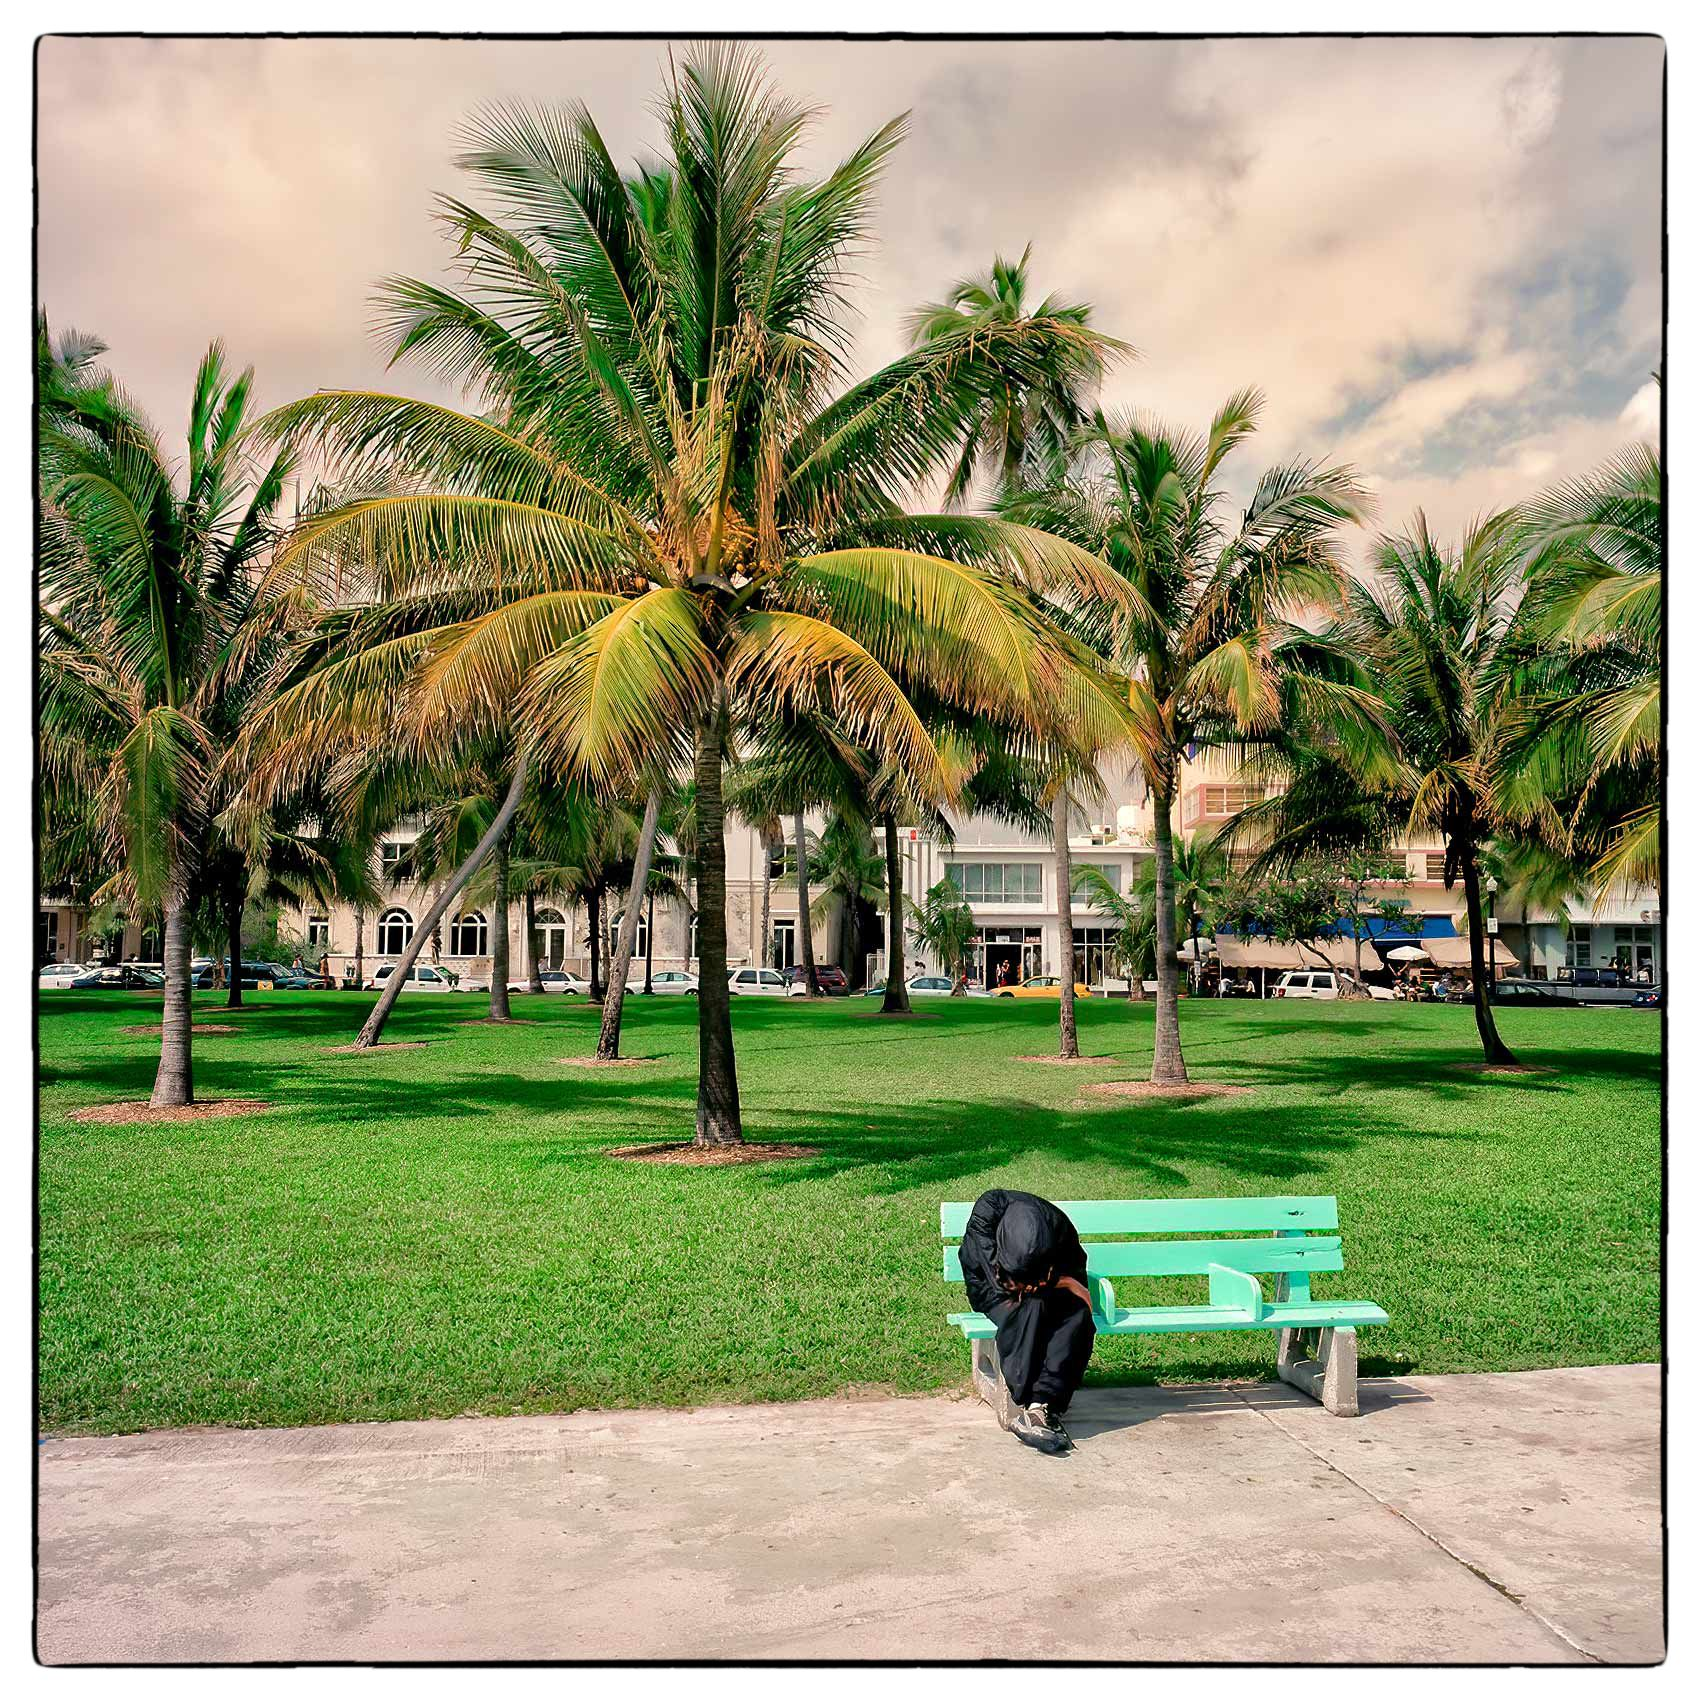 a-homeless-man-sits-on-a-bench-amongst-the-green-pastel-beauty-of-miami-beach